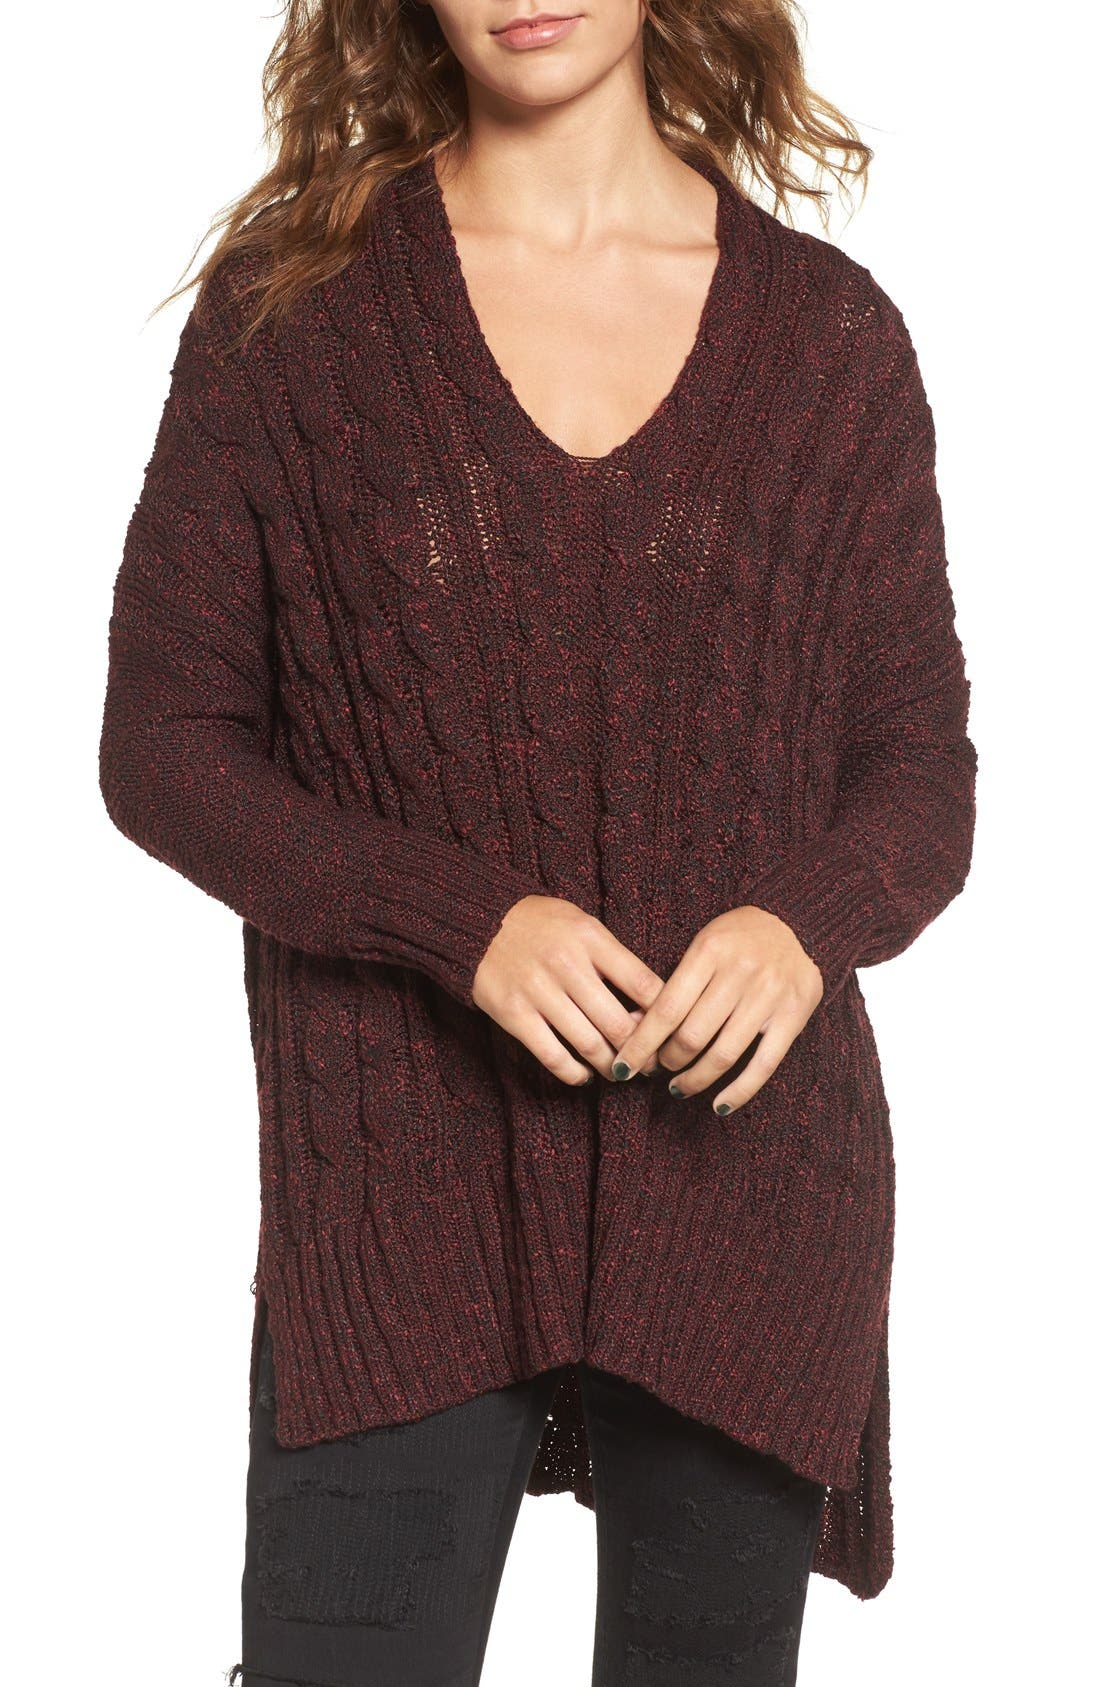 Marled Cable Knit Pullover,                             Main thumbnail 1, color,                             Burgundy/ Black Marl